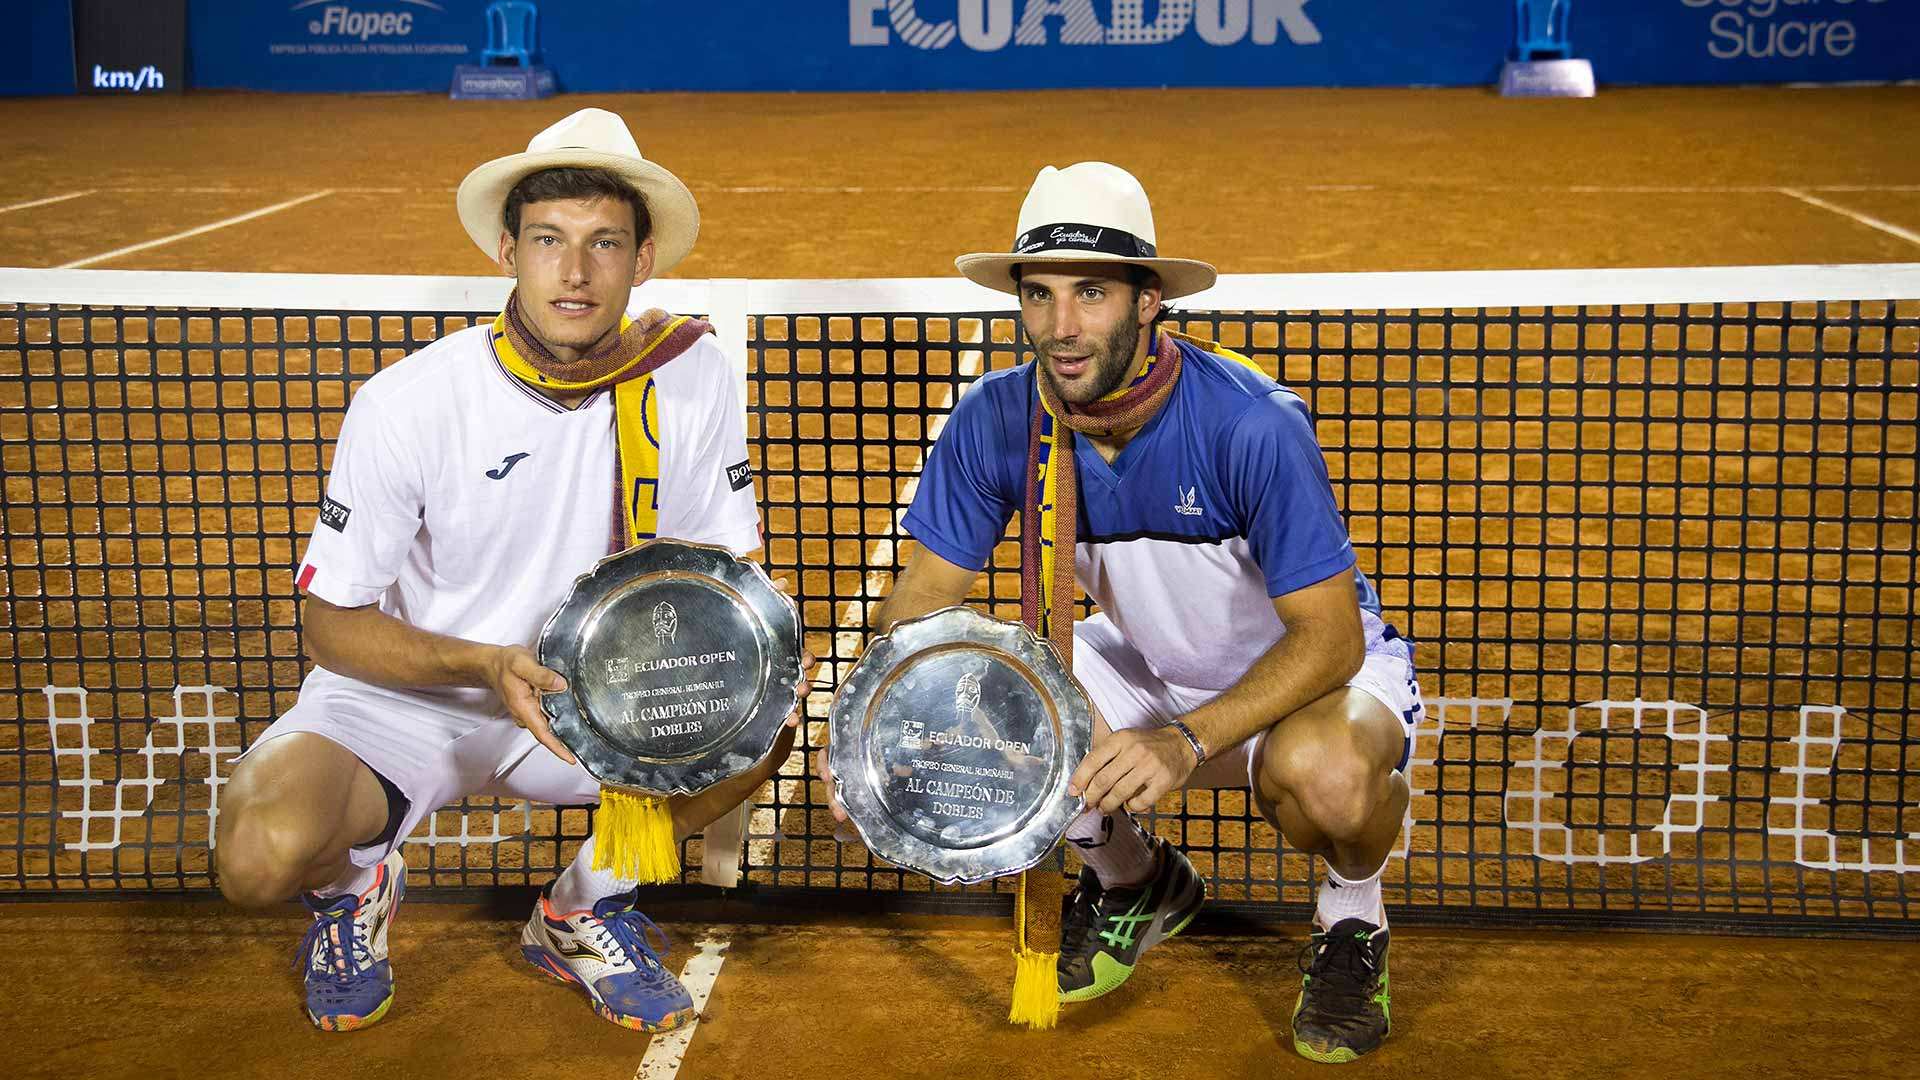 Pablo Carreno Busta and Guillermo Duran capture their first team title in Quito.